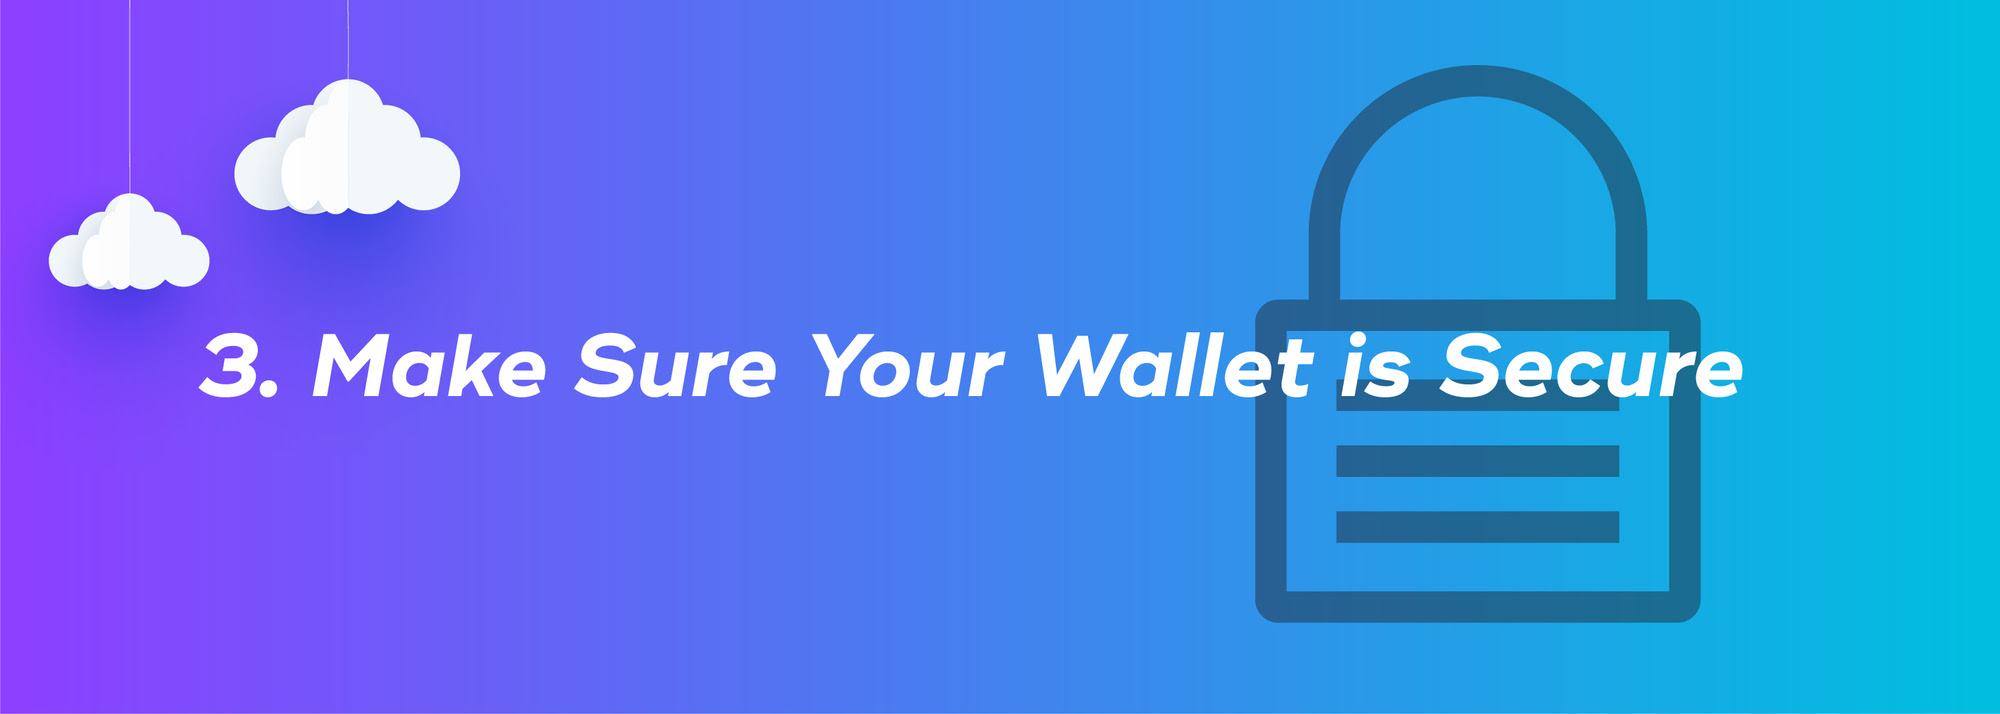 3. Make Sure Your Wallet is Secure